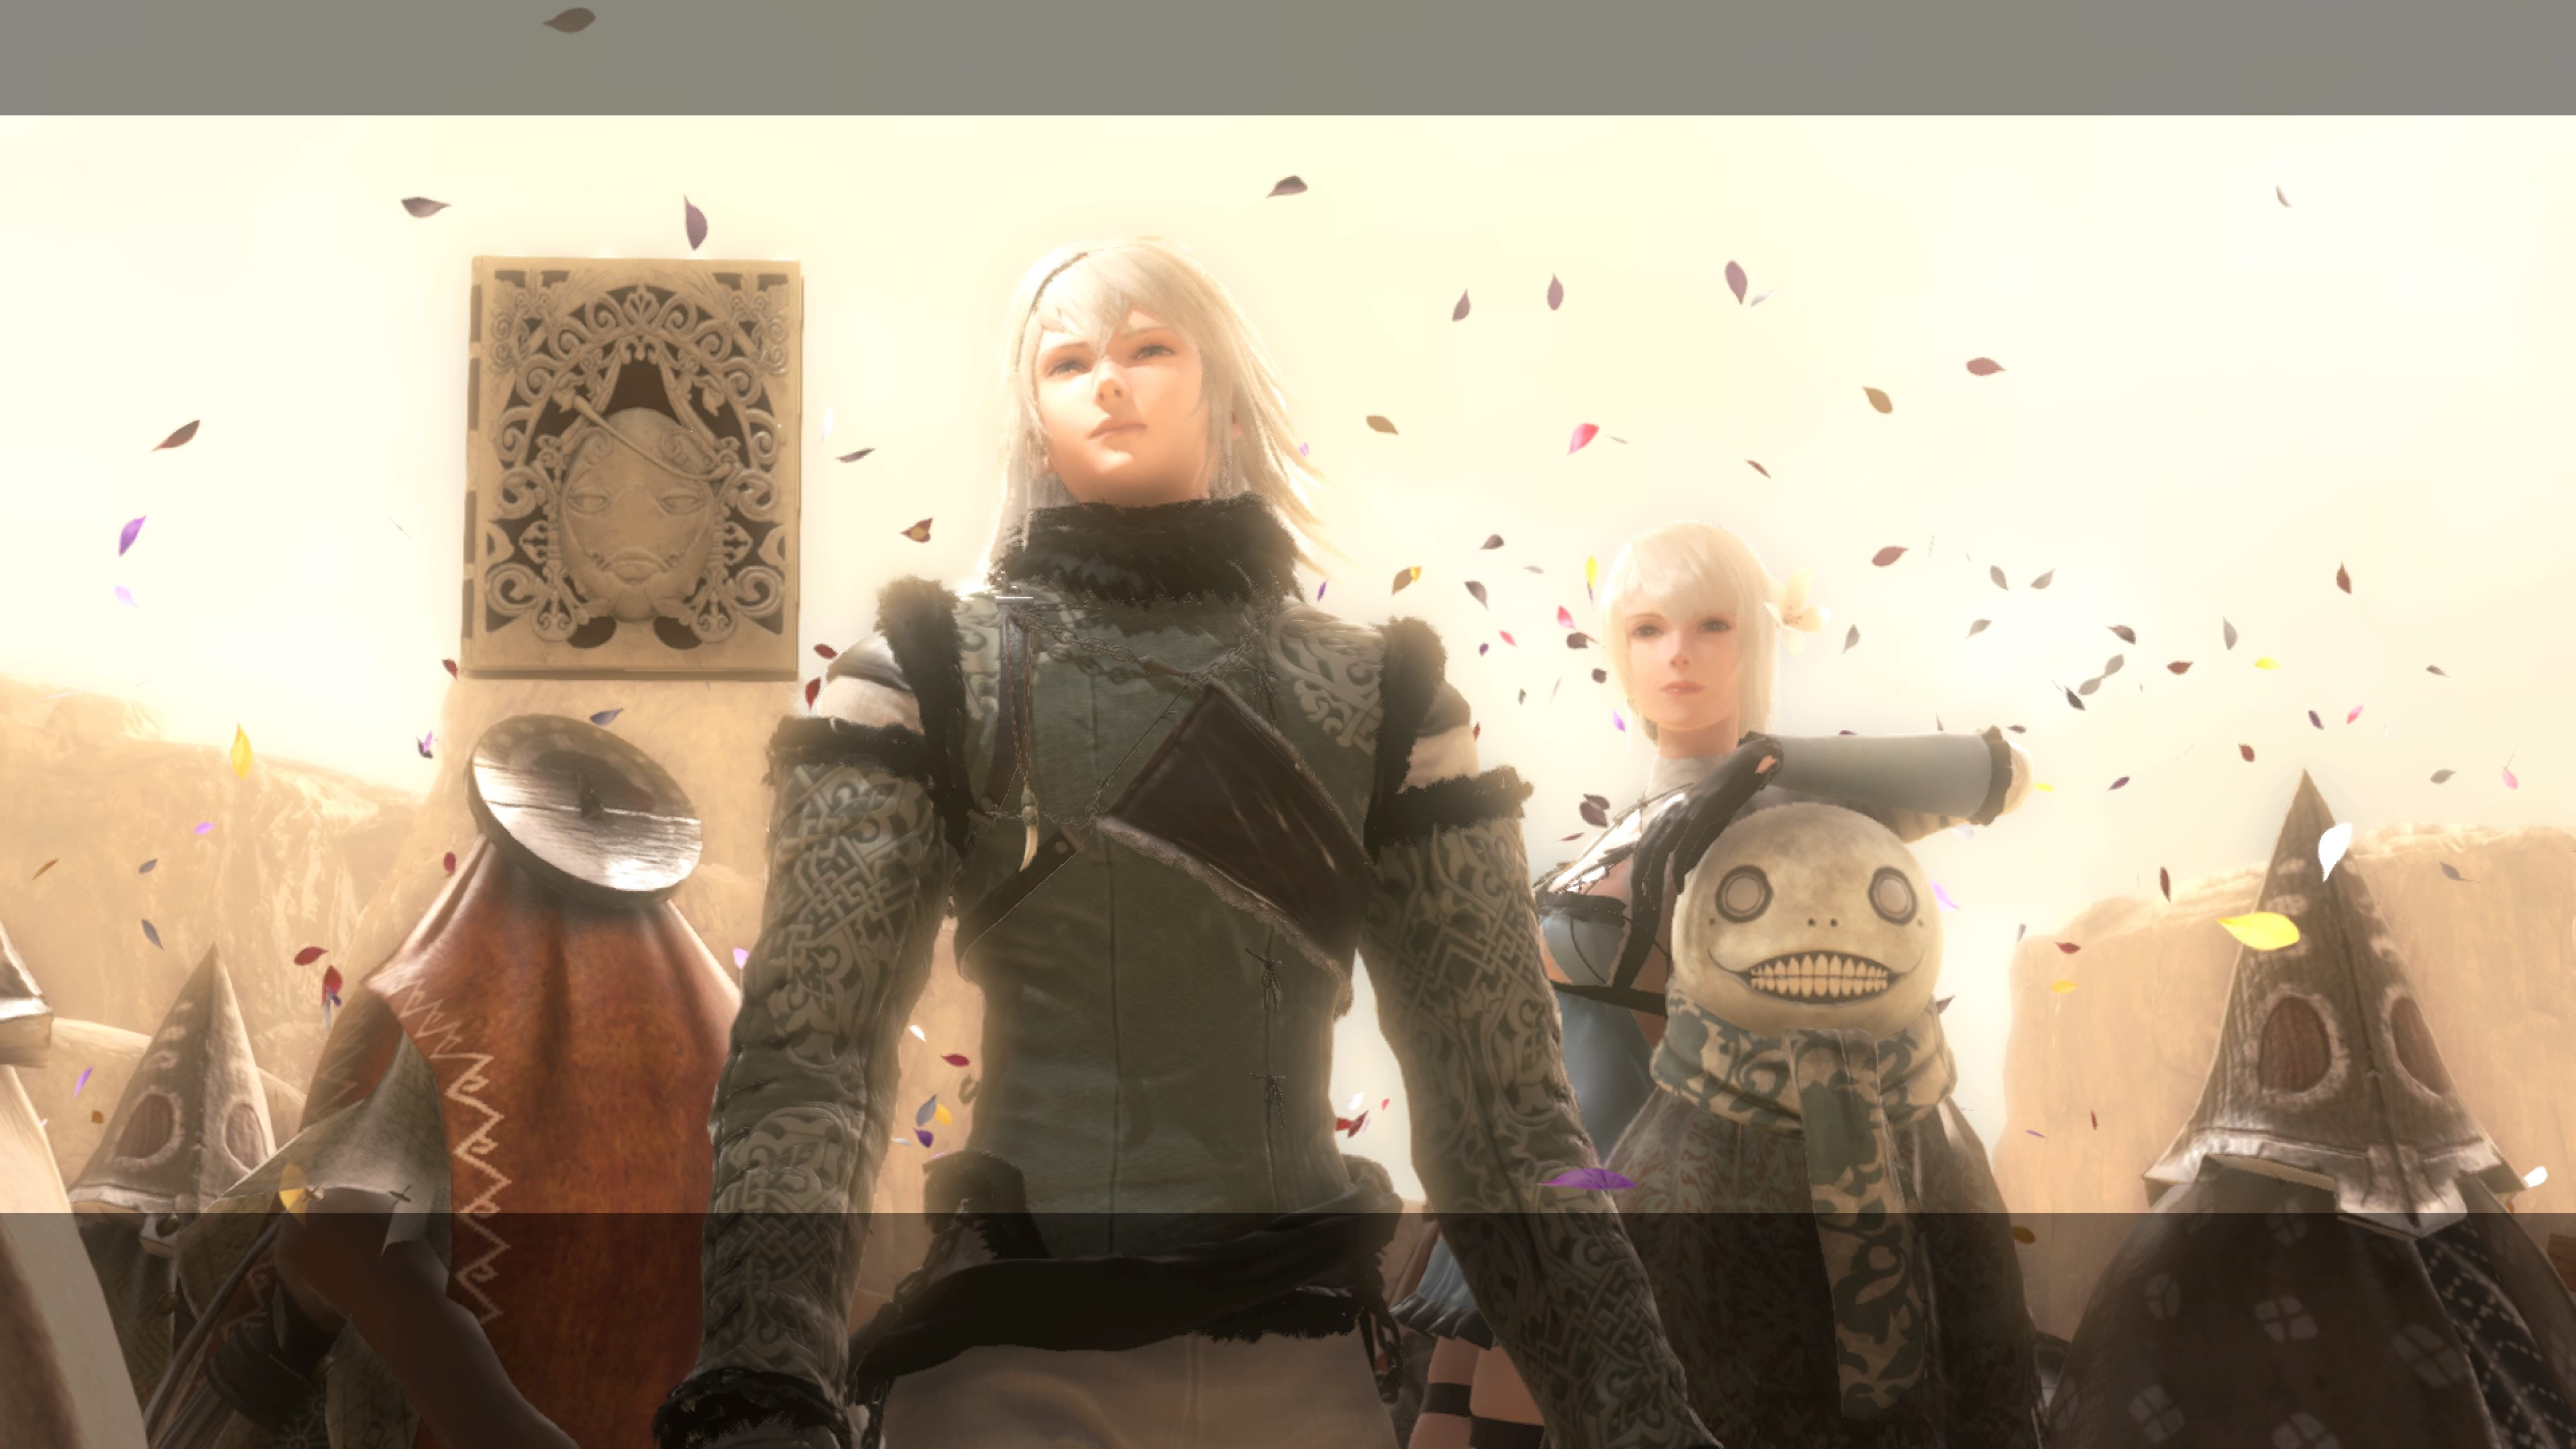 Nier, Kaine, and Emil celebrate together in Nier Replicant.